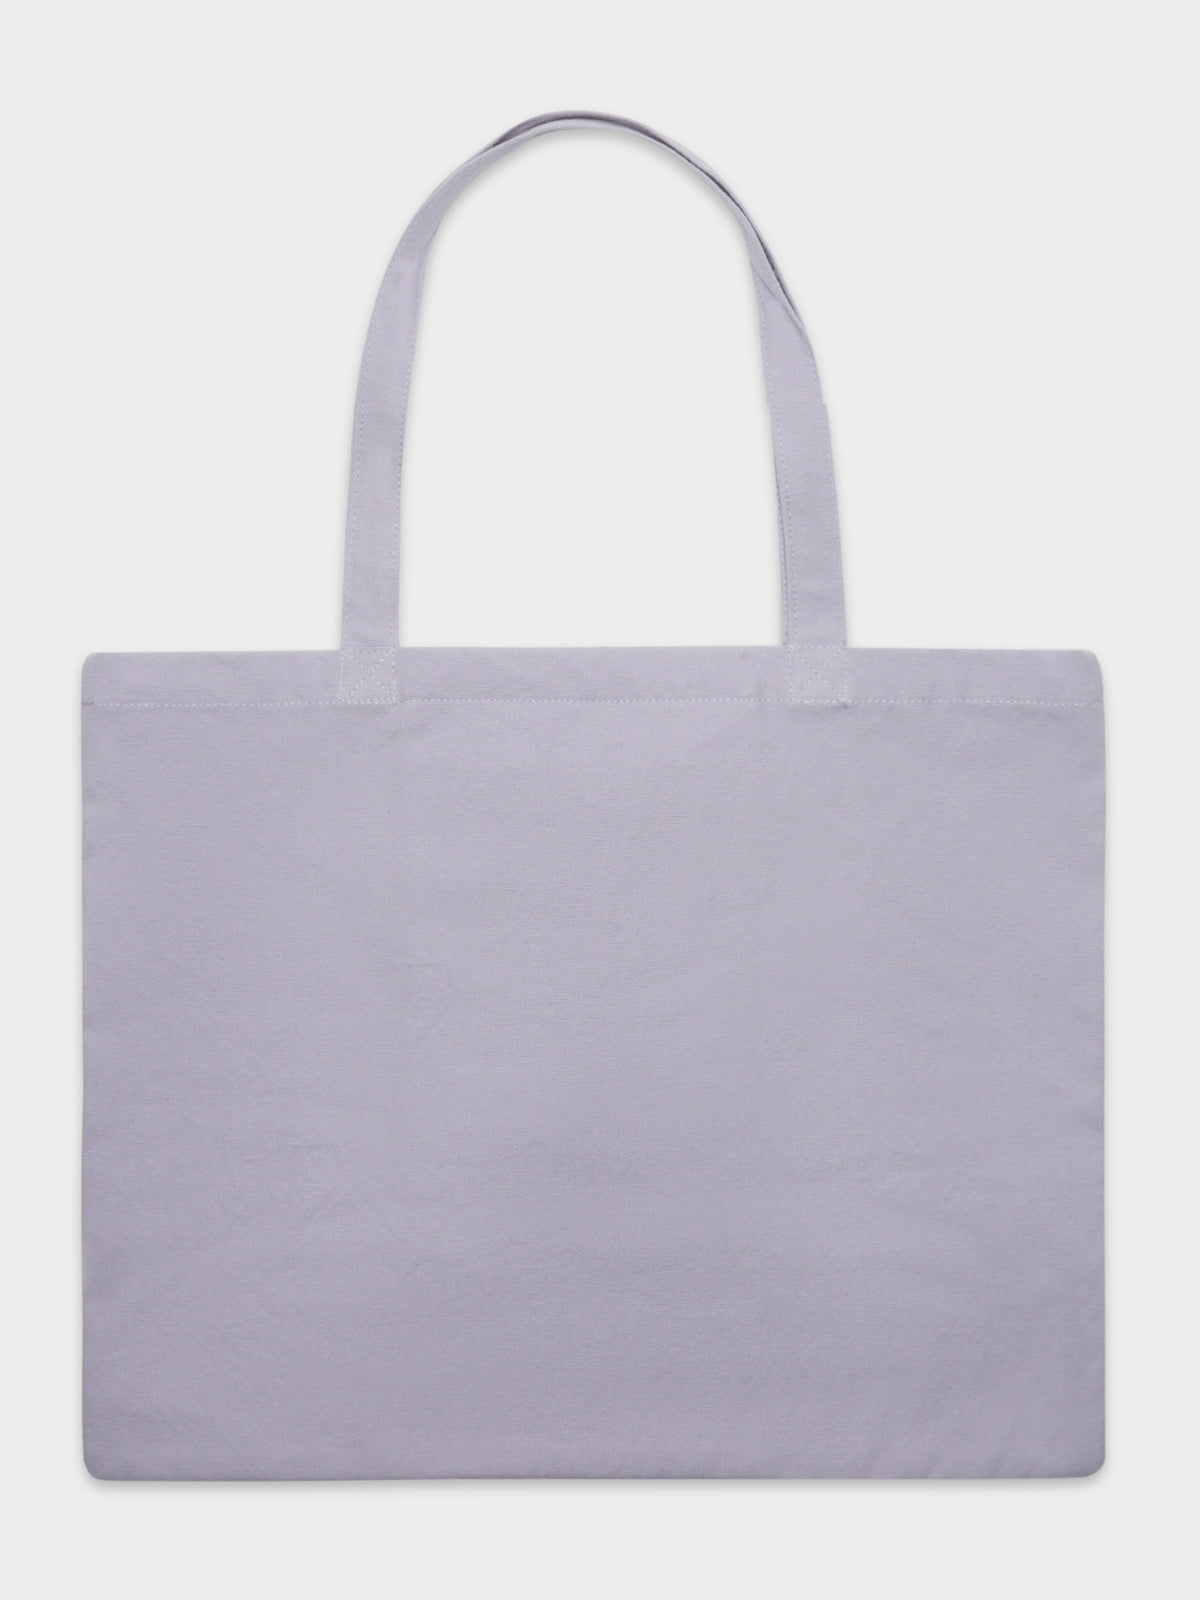 Graffiti World Tour Tote Bag in Purple